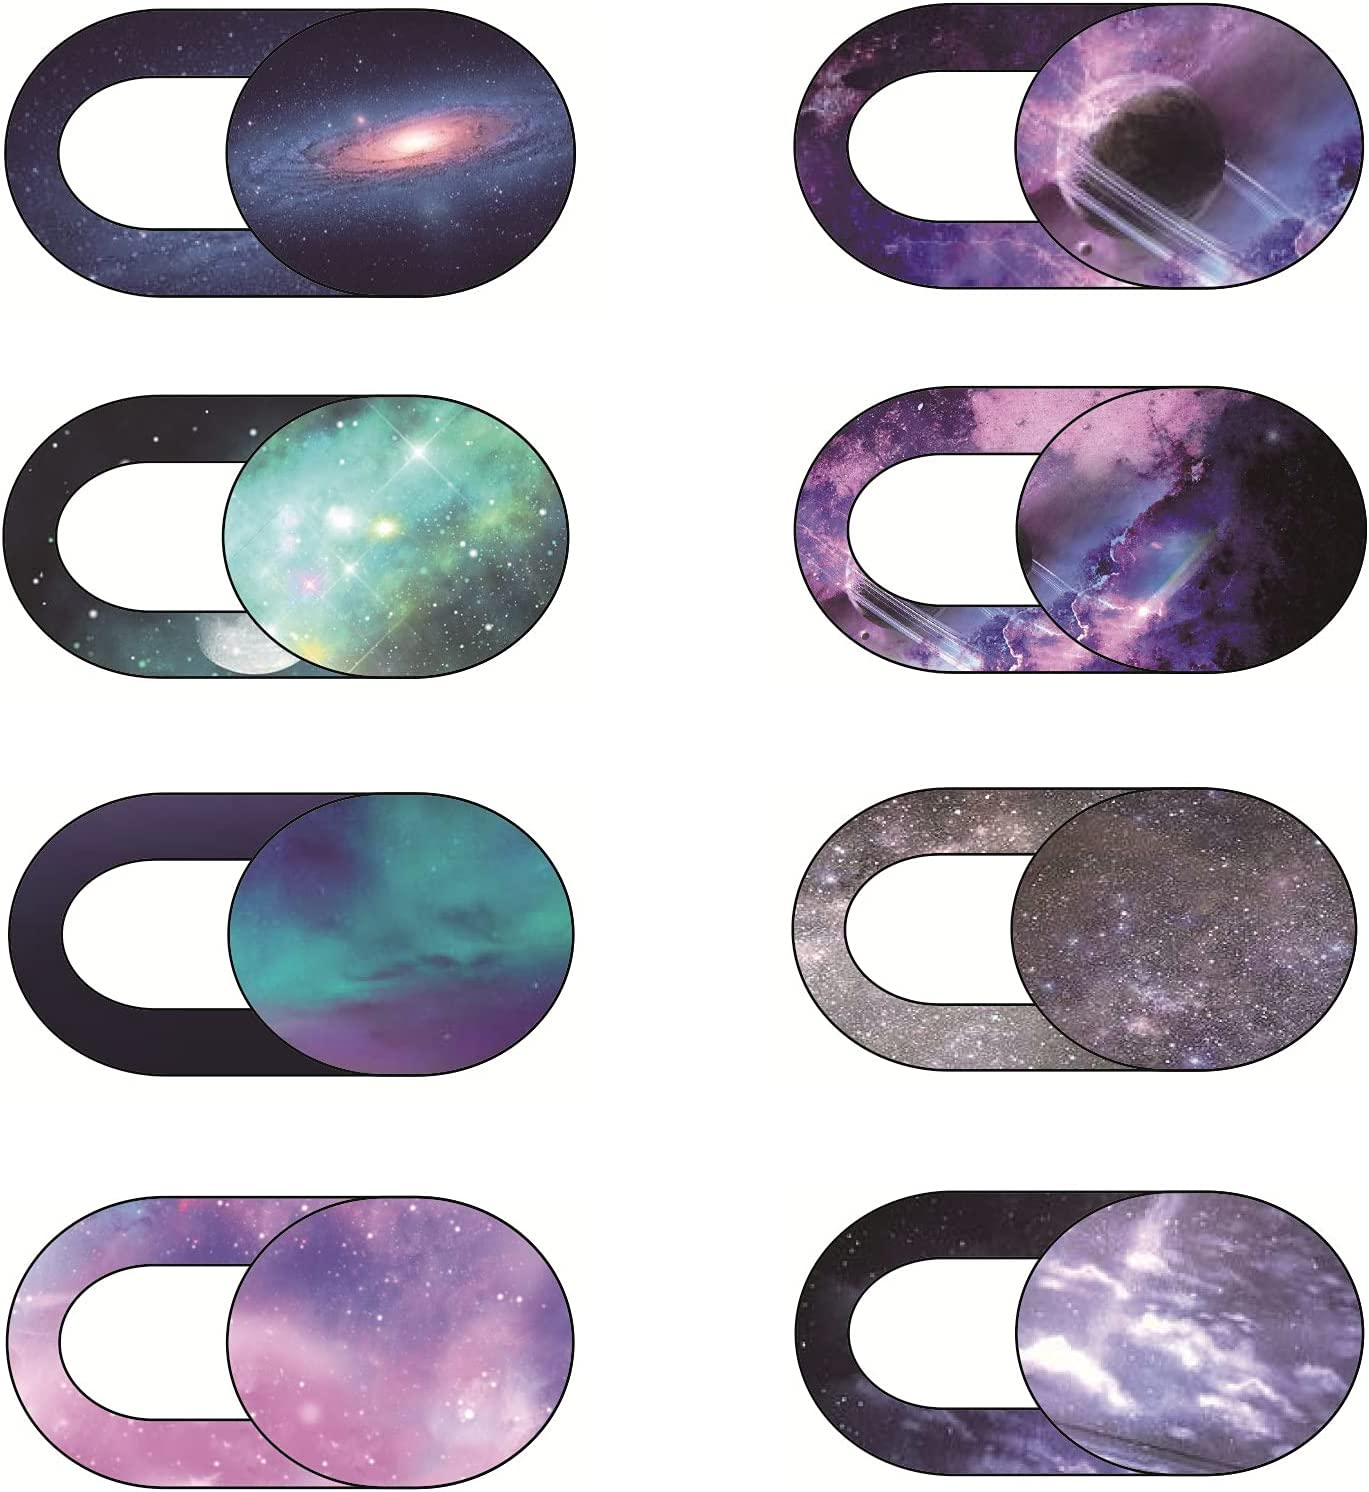 Webcam Cover 8 Packs, Ultra-Thin Camera Cover Privacy Protector, Cover Slide for Laptop/Mac/MacBook Air/iPad/iMac/PC/Cell Phone, Webcam Covers Laptop Accessories (Starry Sky)